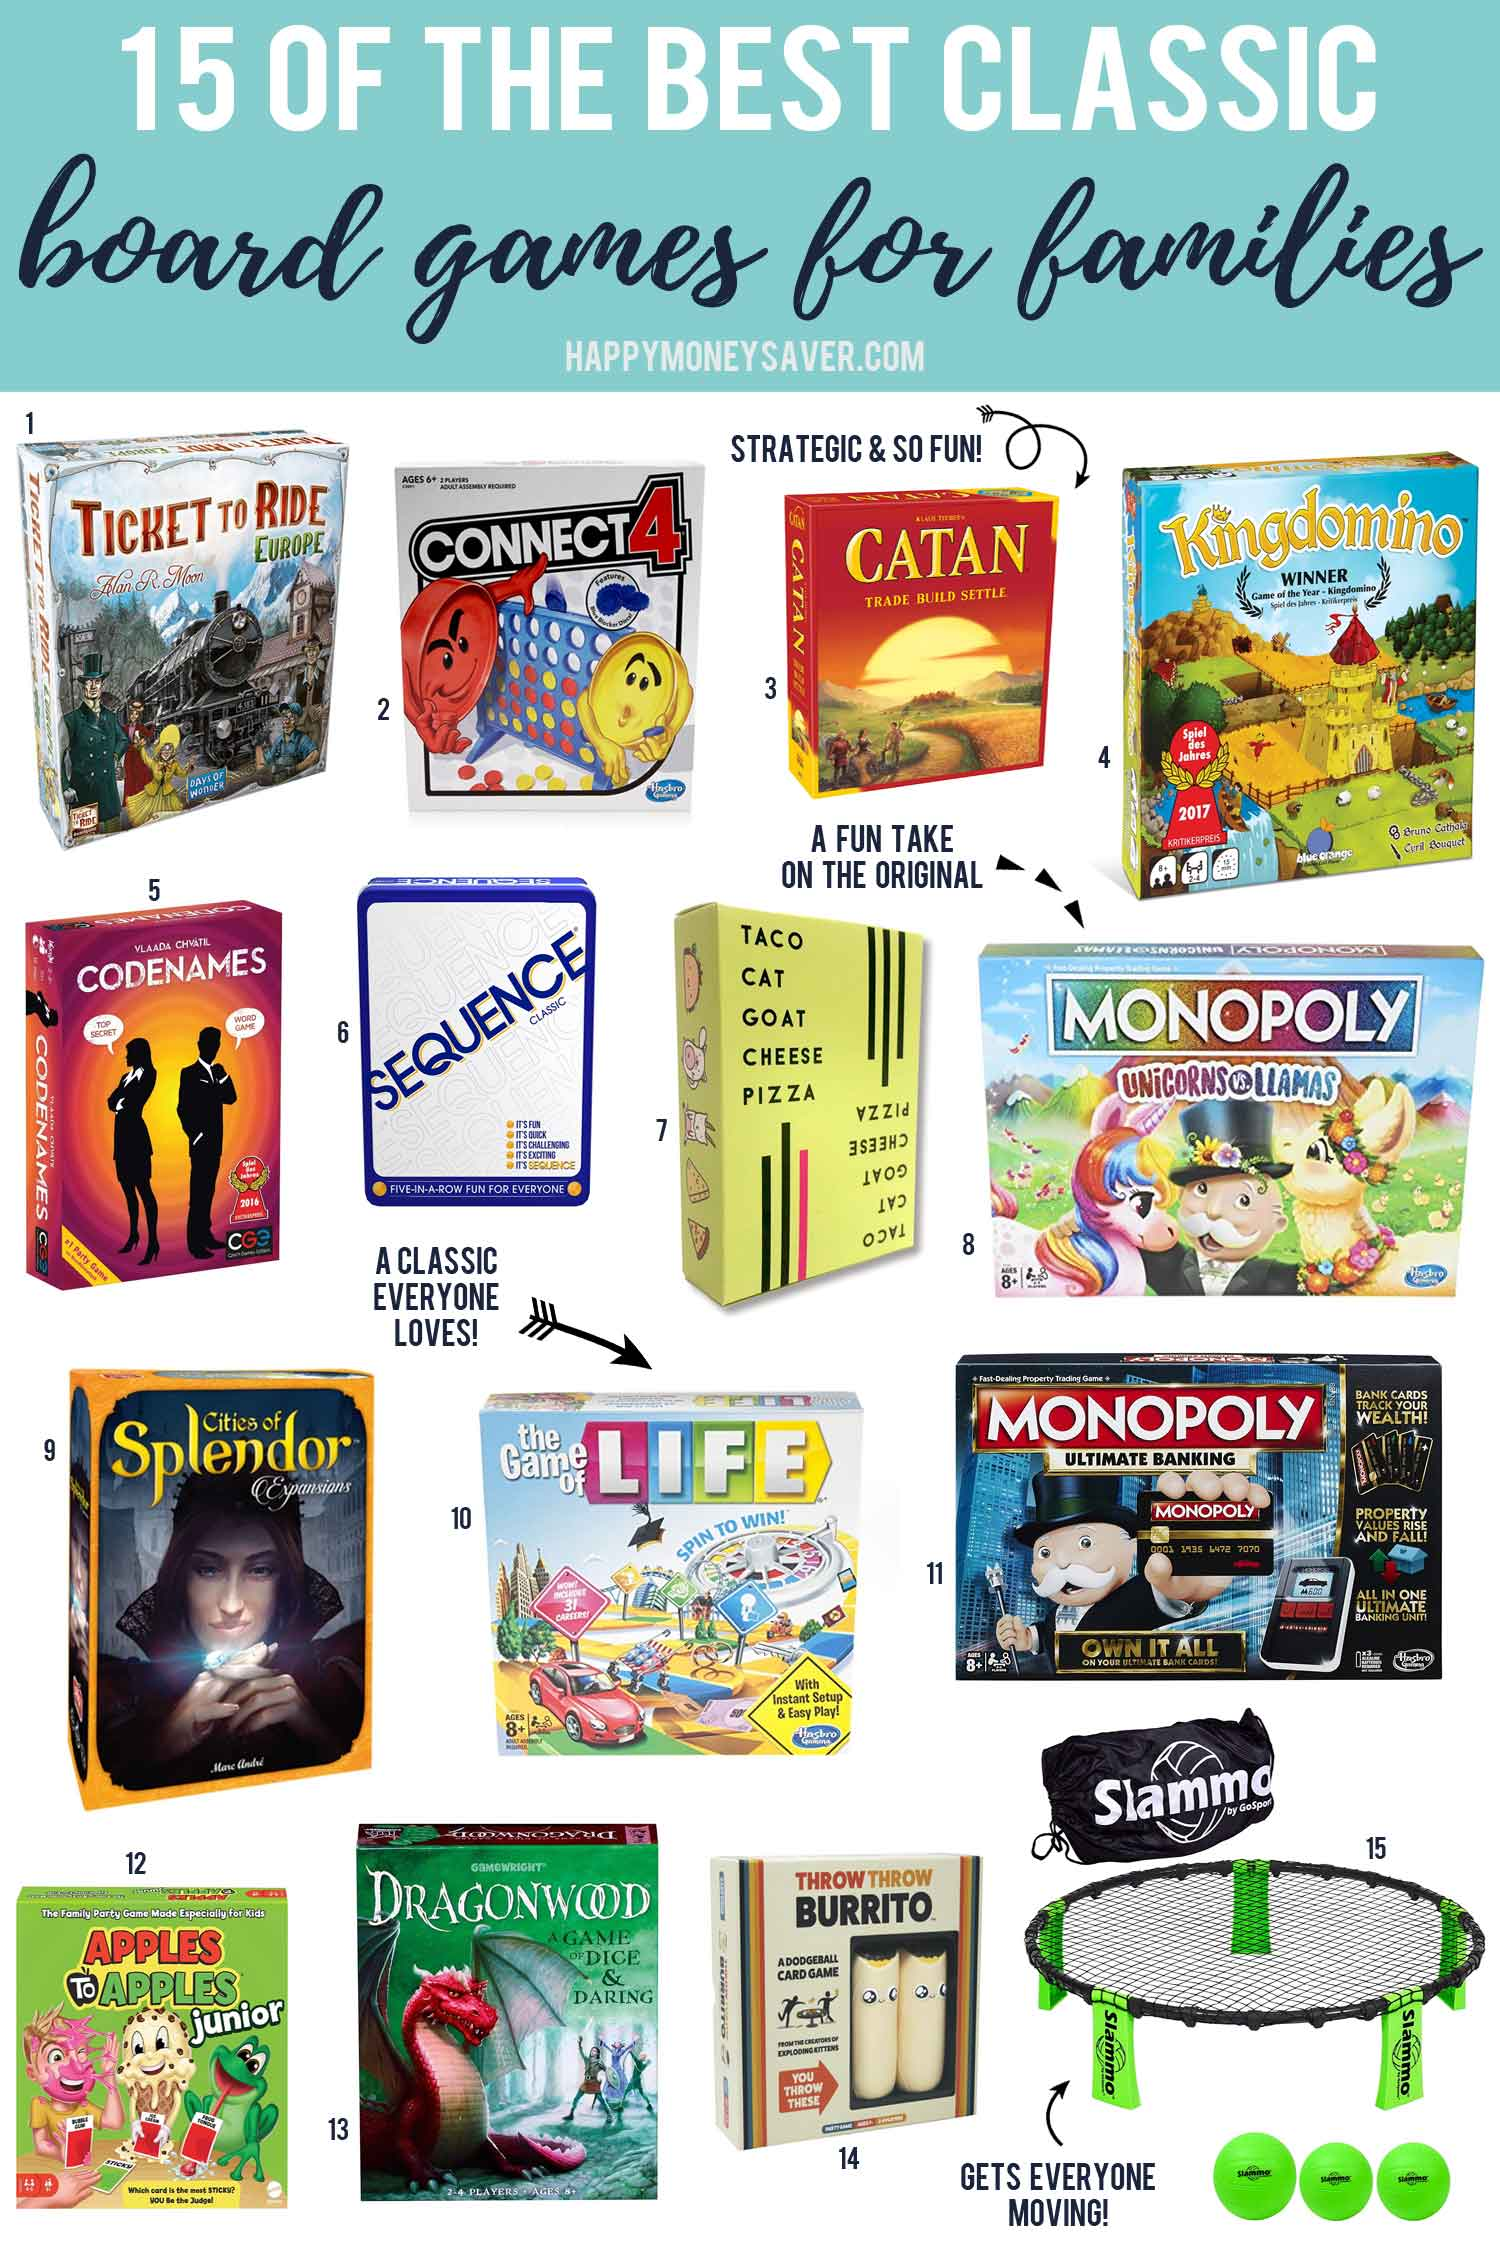 15 of the Best Classic Board Games  for families is written at the top with the pics underneath it.